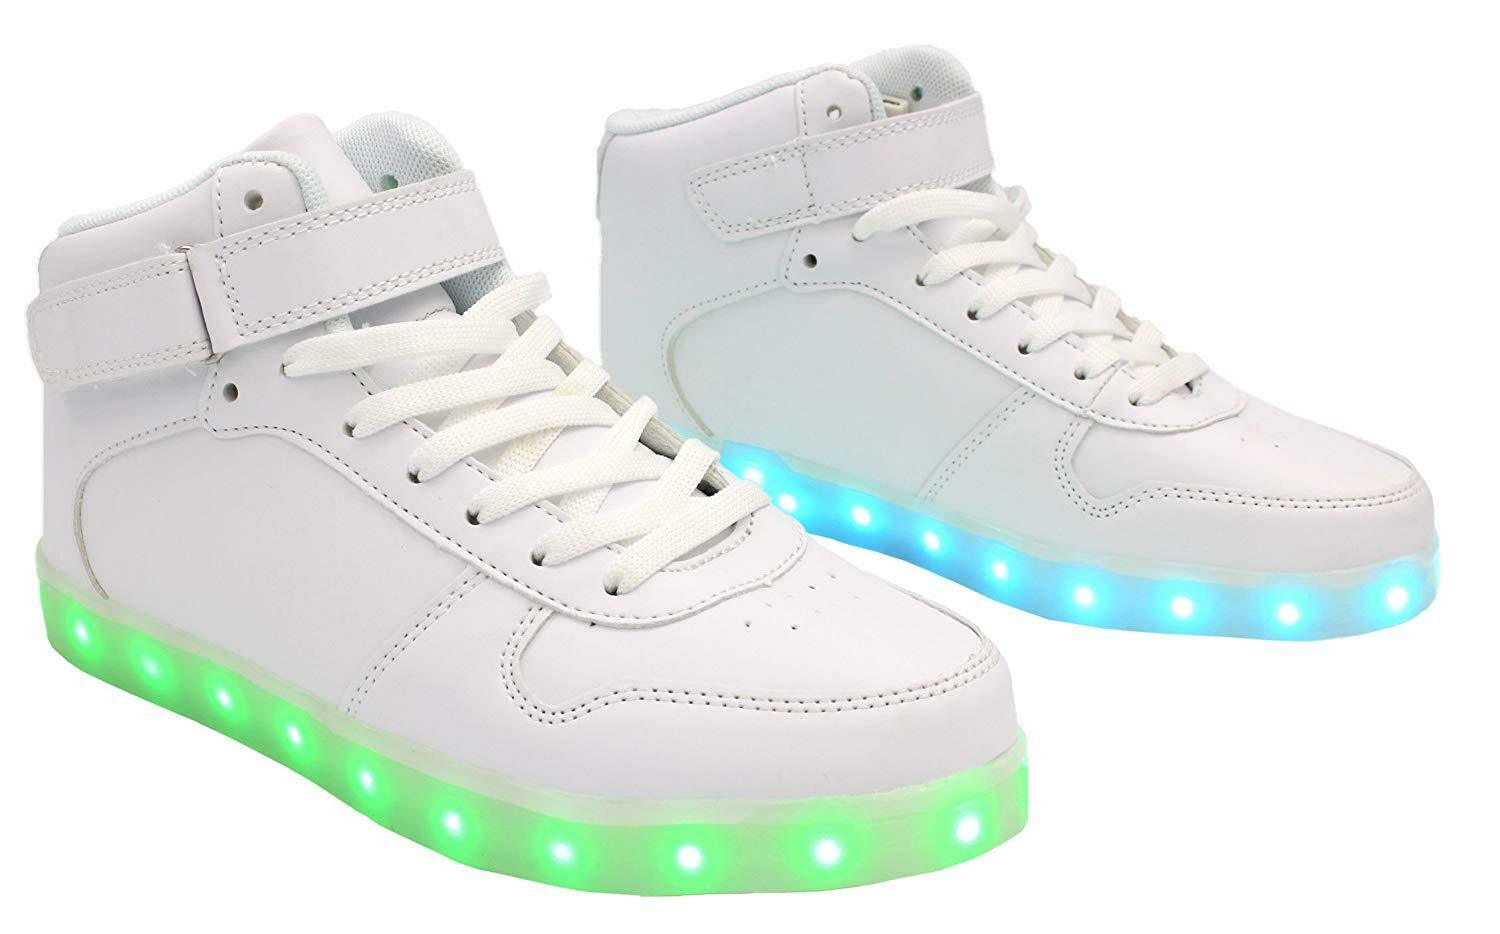 75e63eb3ecda1 Details about Galaxy LED Shoes Light Up USB Charging High Top Lace & Strap  Kids Sneakers White